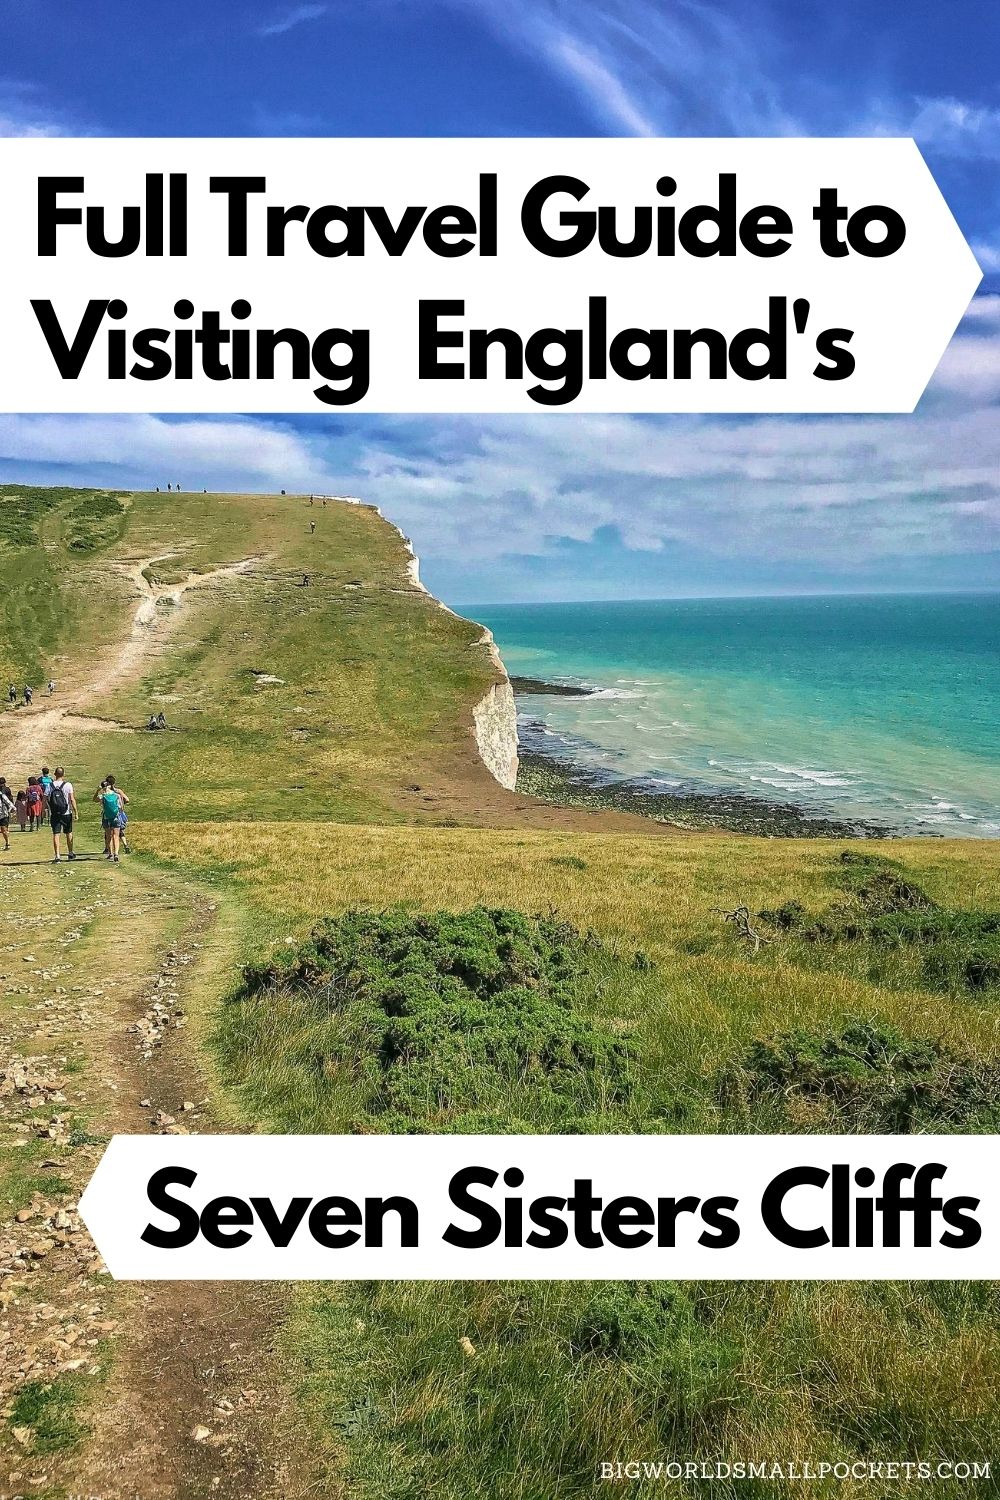 Full Travel Guide to Visiting the Seven Sisters Cliffs in England